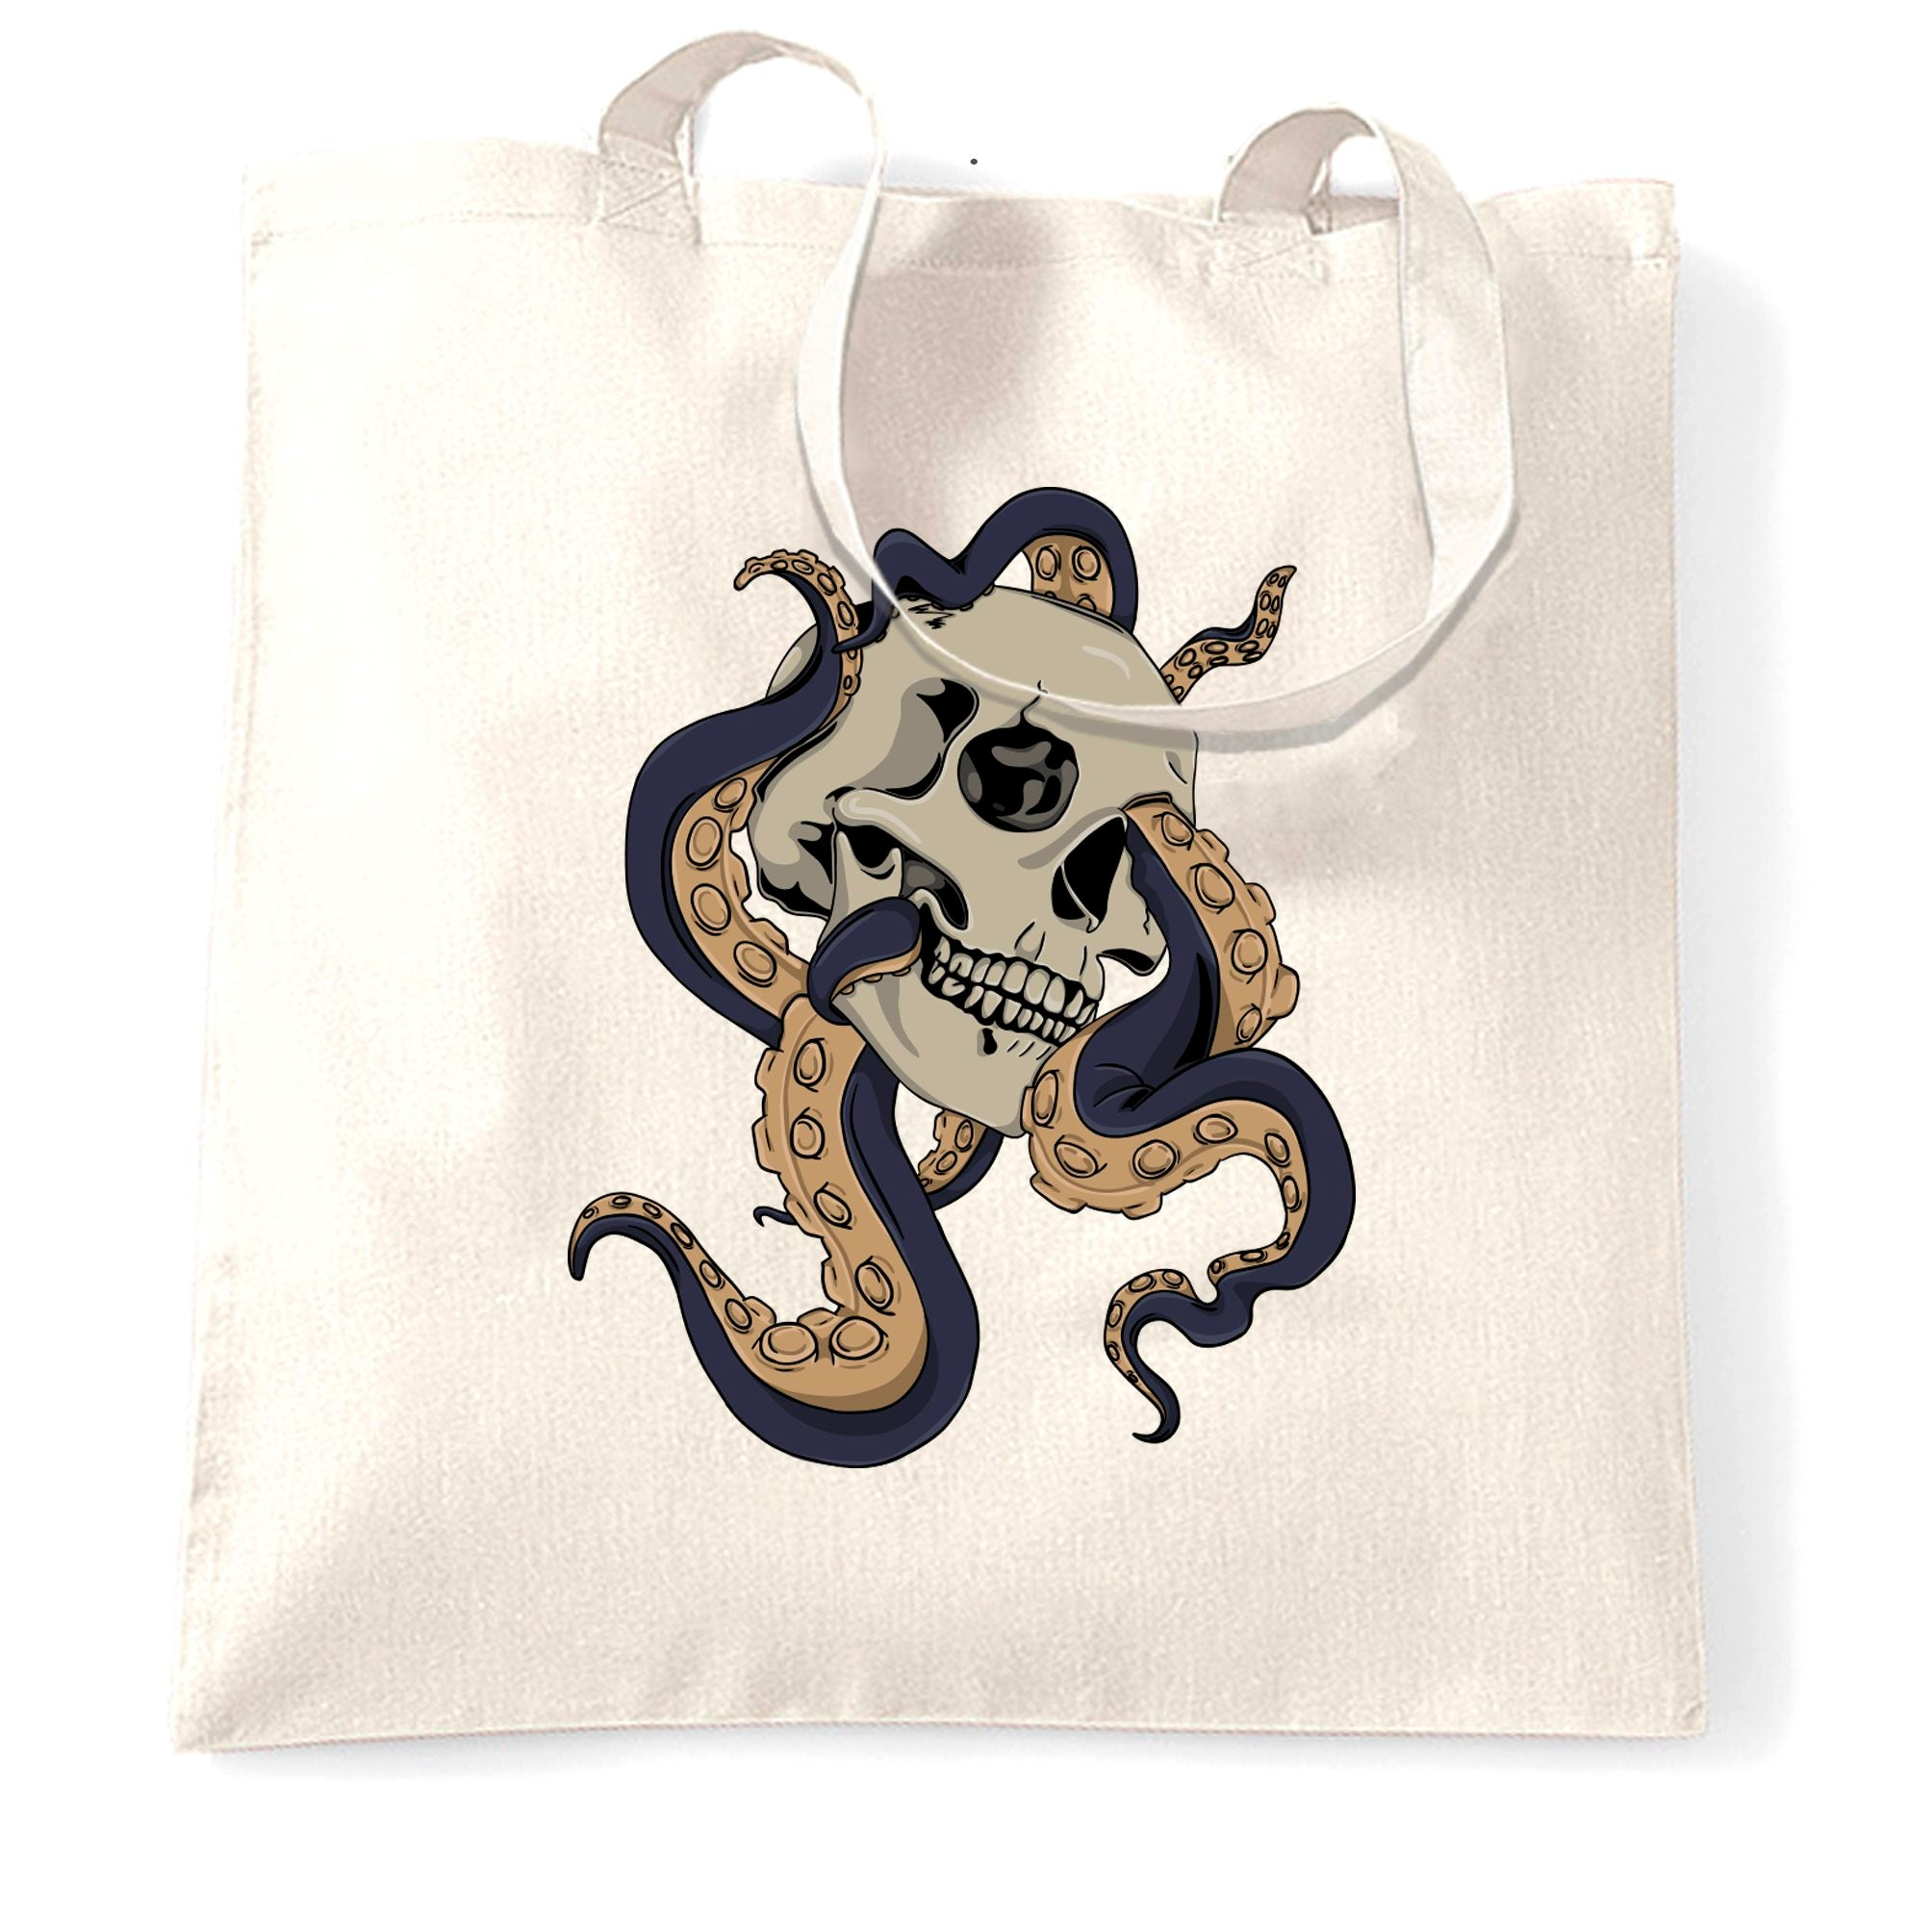 Tattoo Street Art Tote Bag Skull And Octopus Graphic